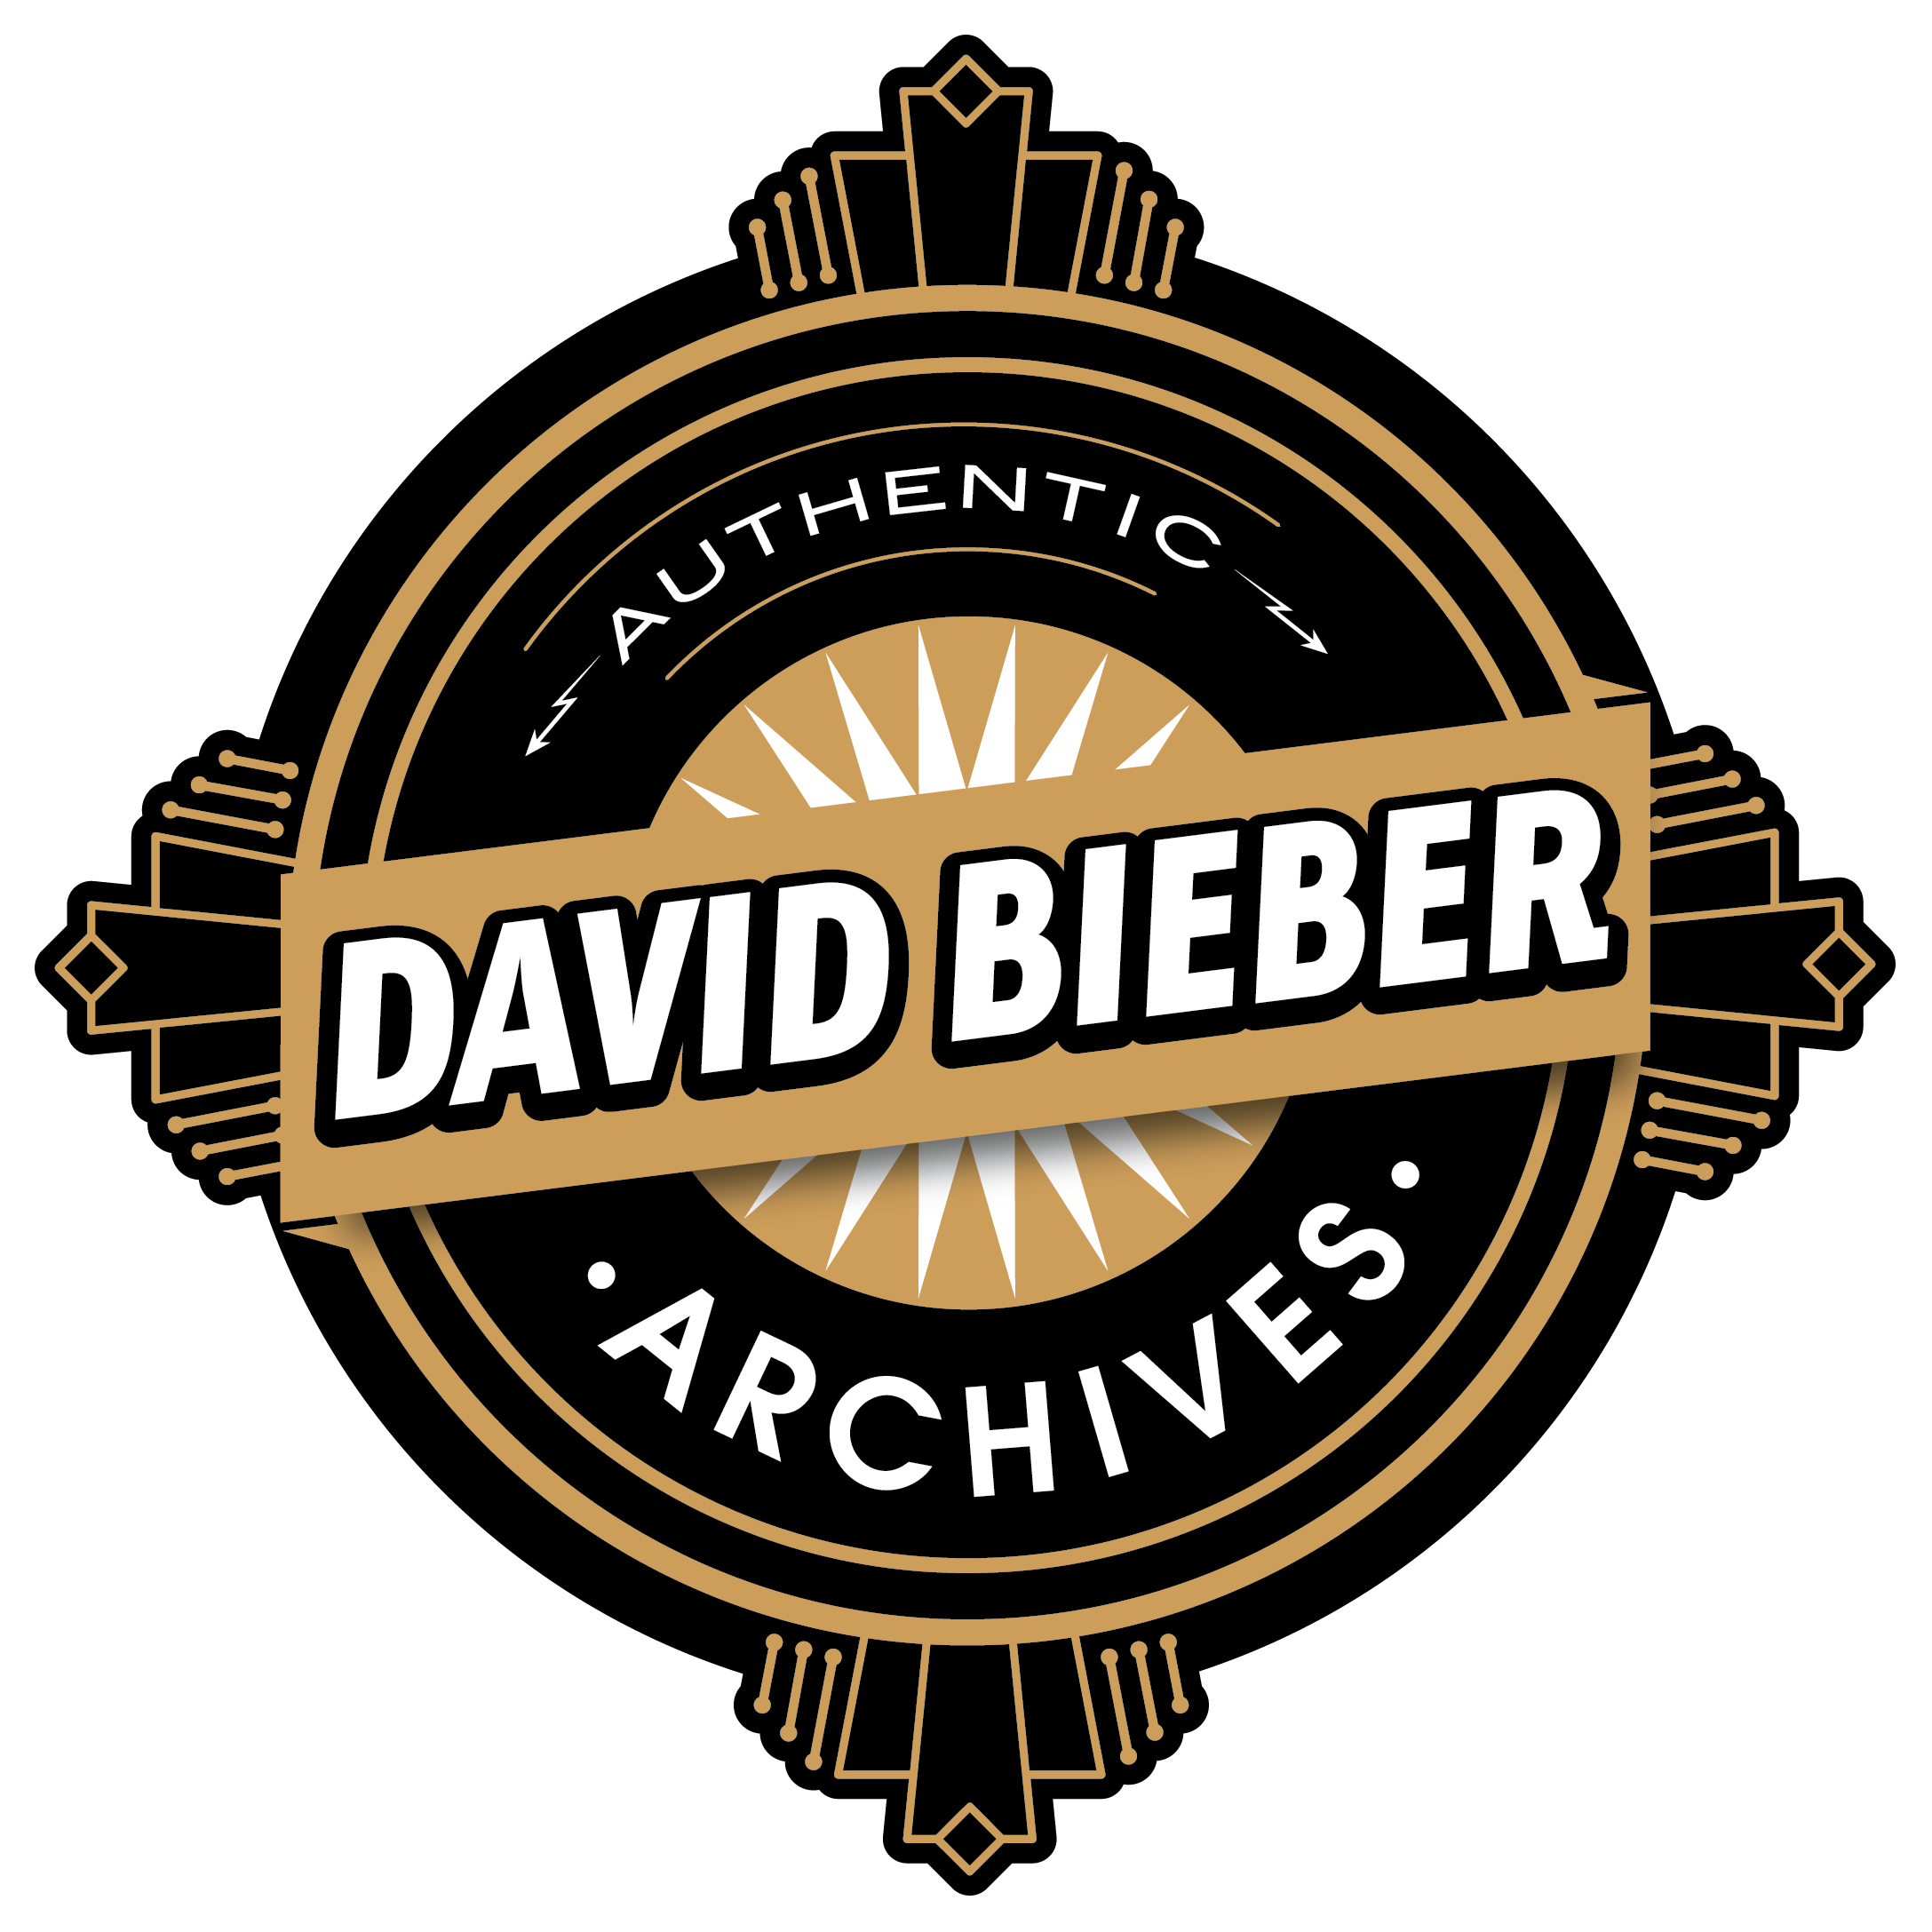 David Bieber Archives logo